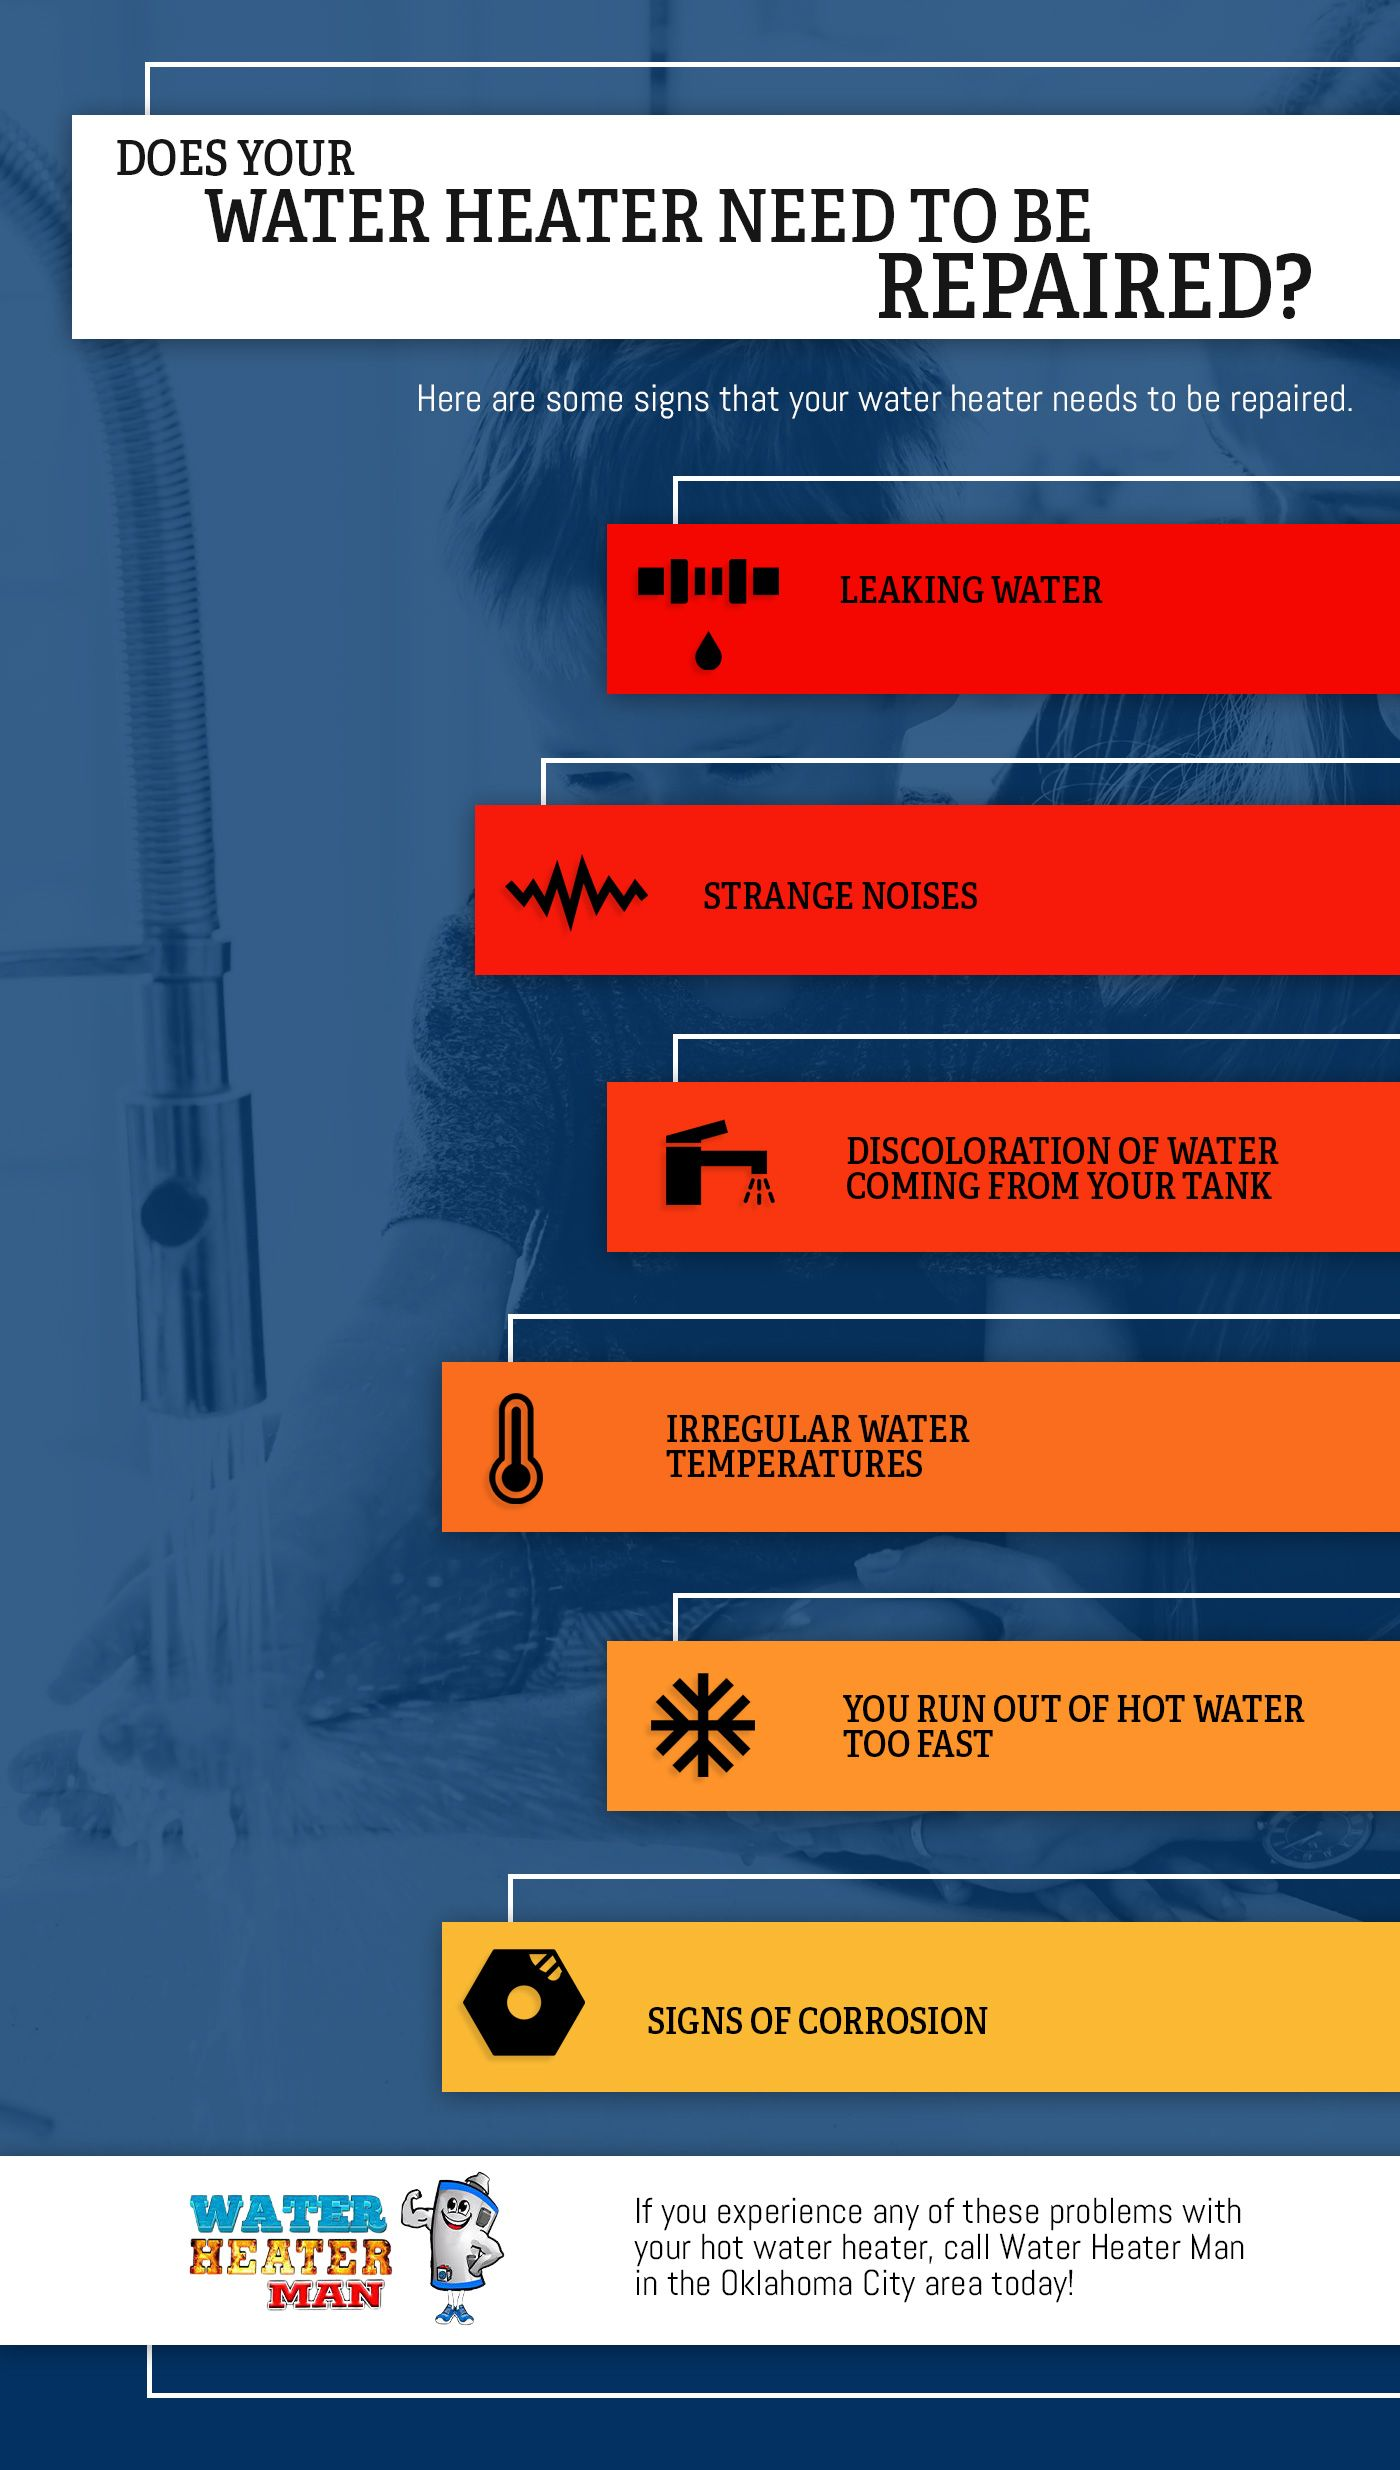 Does Your Water Heater Need to be Repaired_.jpg